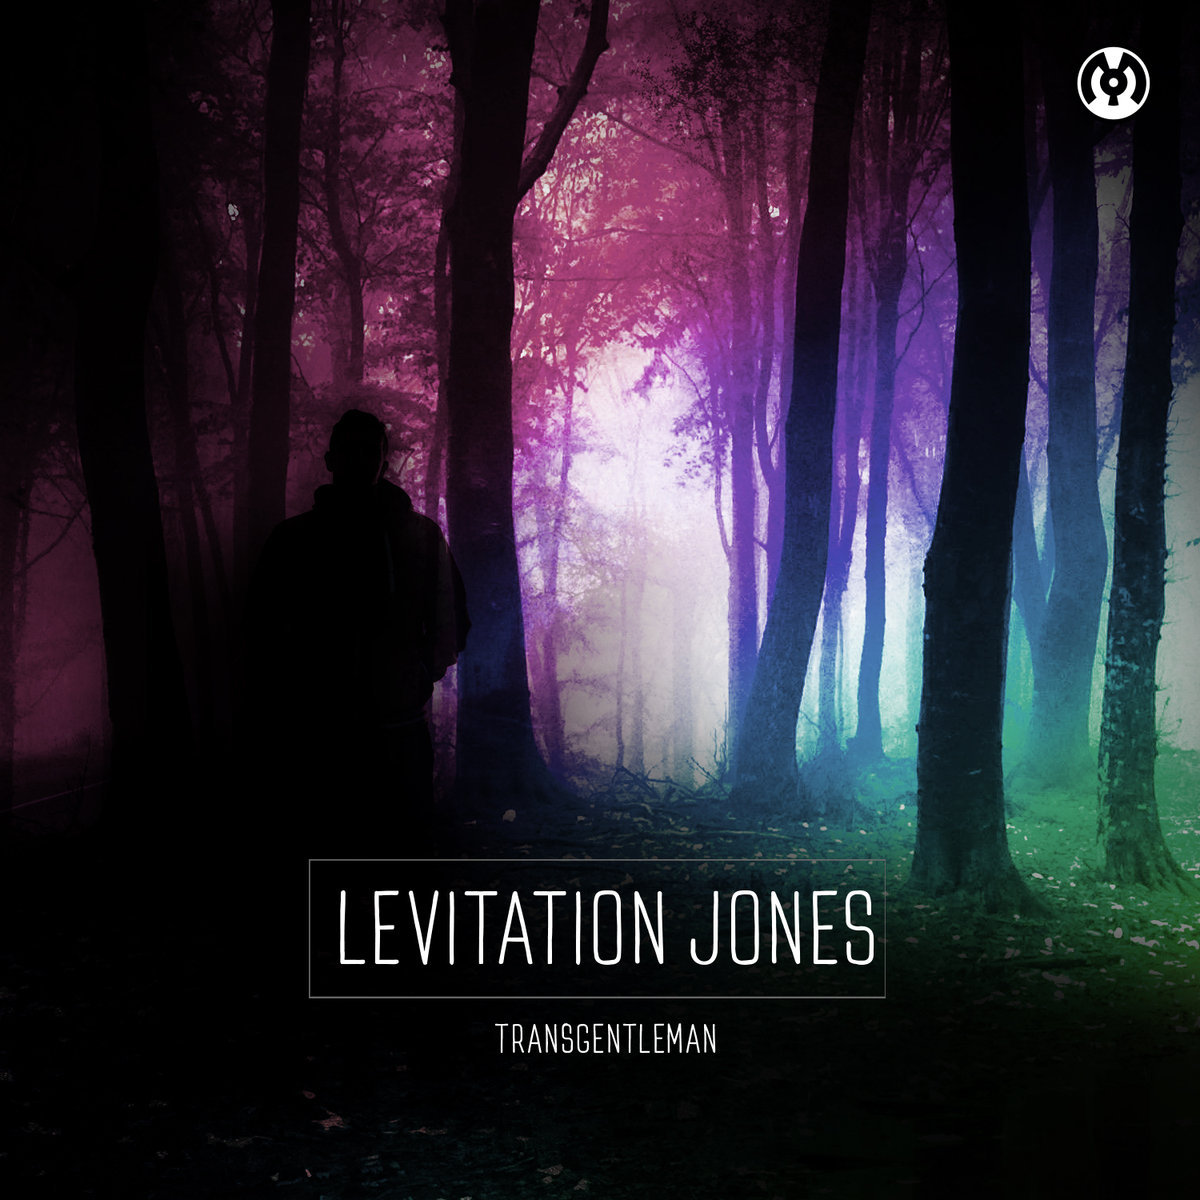 Levitation Jones - New Kid @ 'Transgentleman' album (electronic, dubstep)